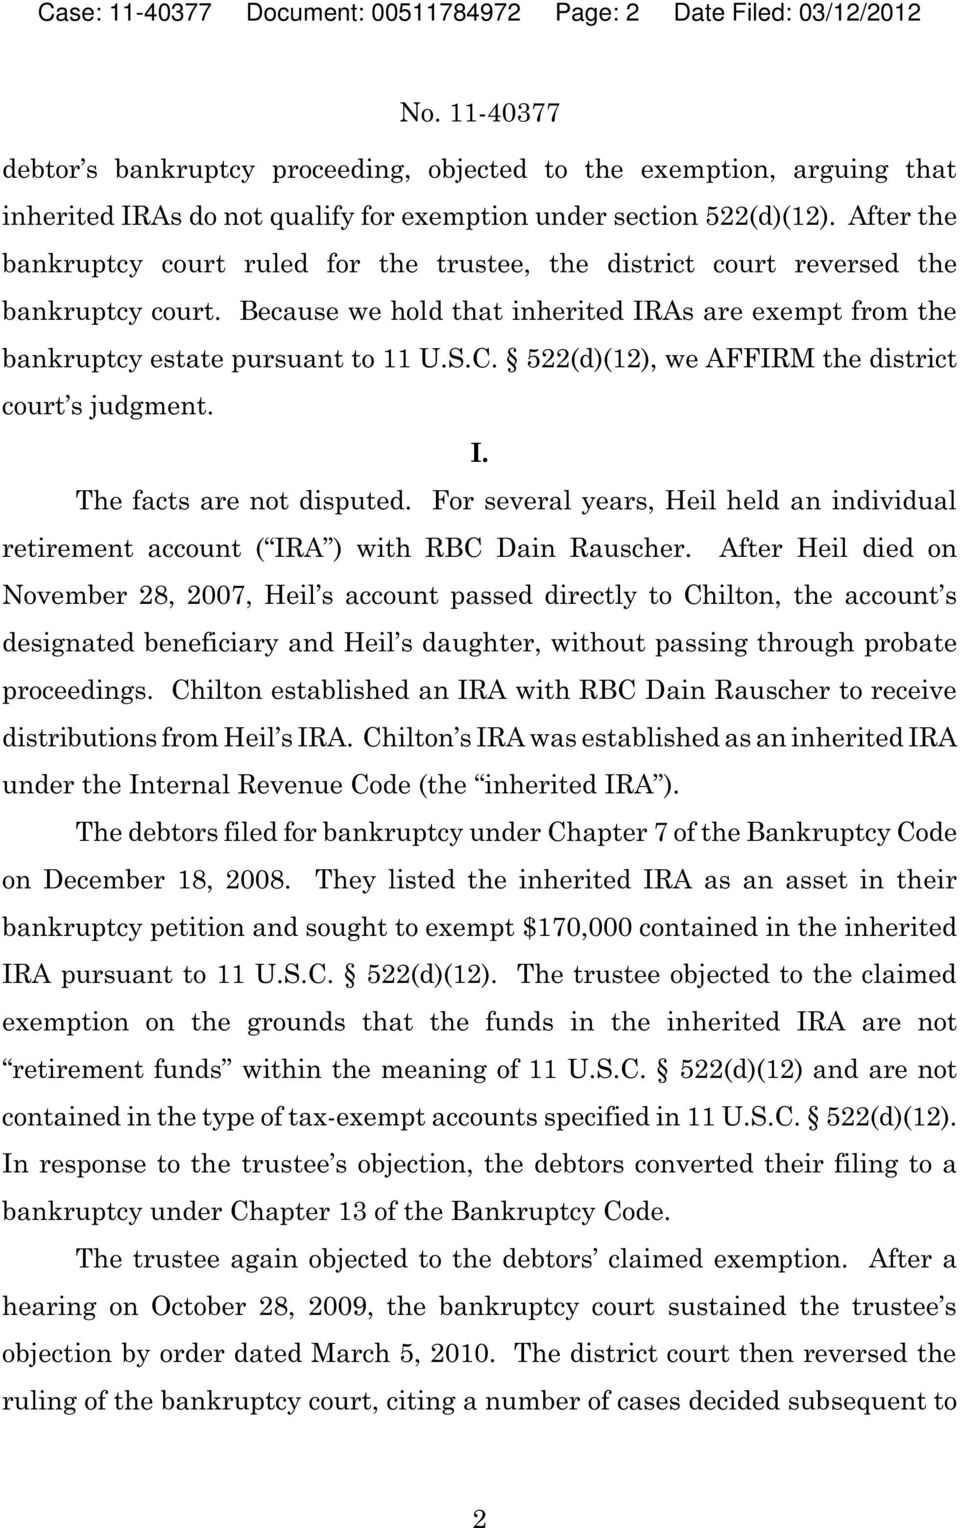 Because we hold that inherited IRAs are exempt from the bankruptcy estate pursuant to 11 U.S.C. 522(d)(12), we AFFIRM the district court s judgment. I. The facts are not disputed.